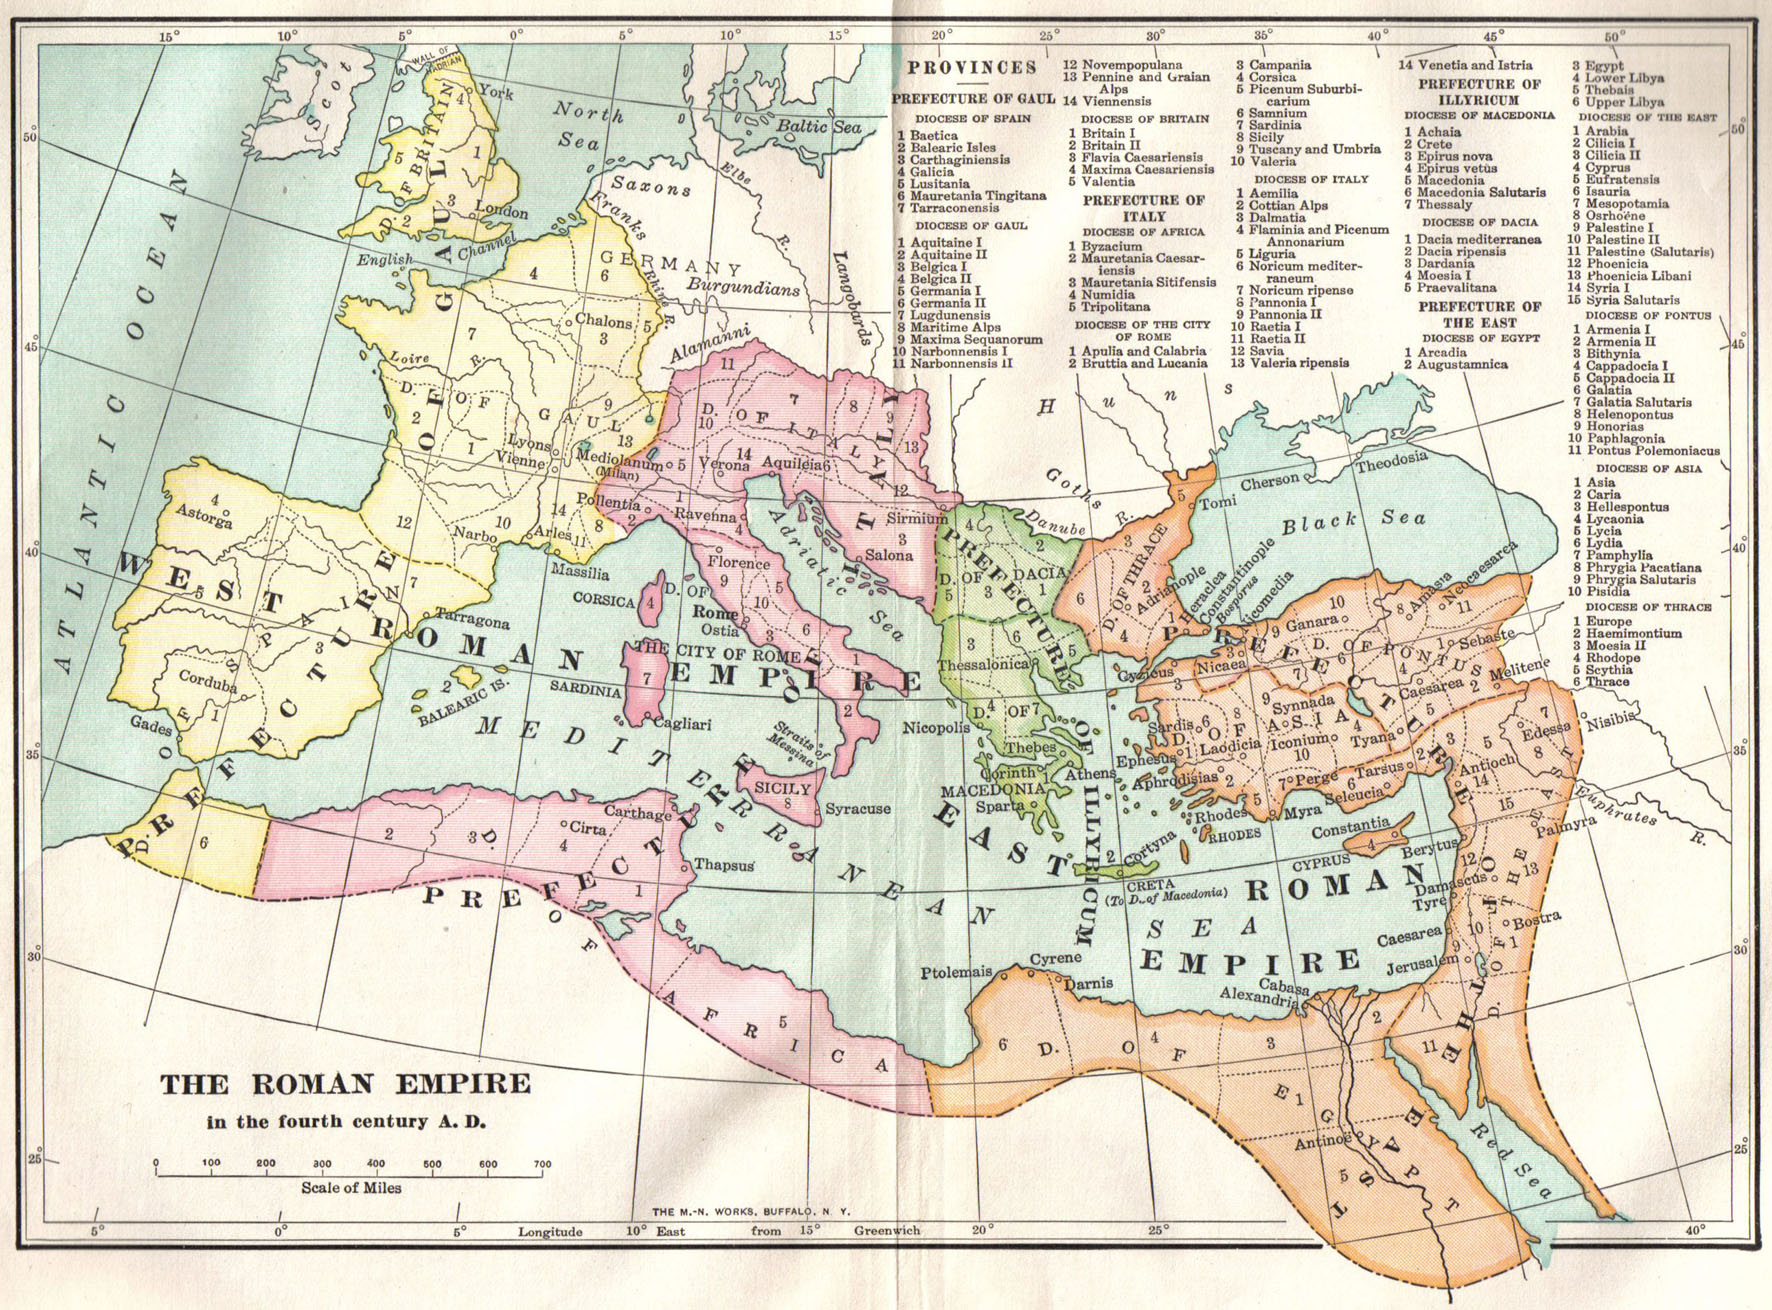 https://i1.wp.com/www.edmaps.com/roman_empire_350.jpg